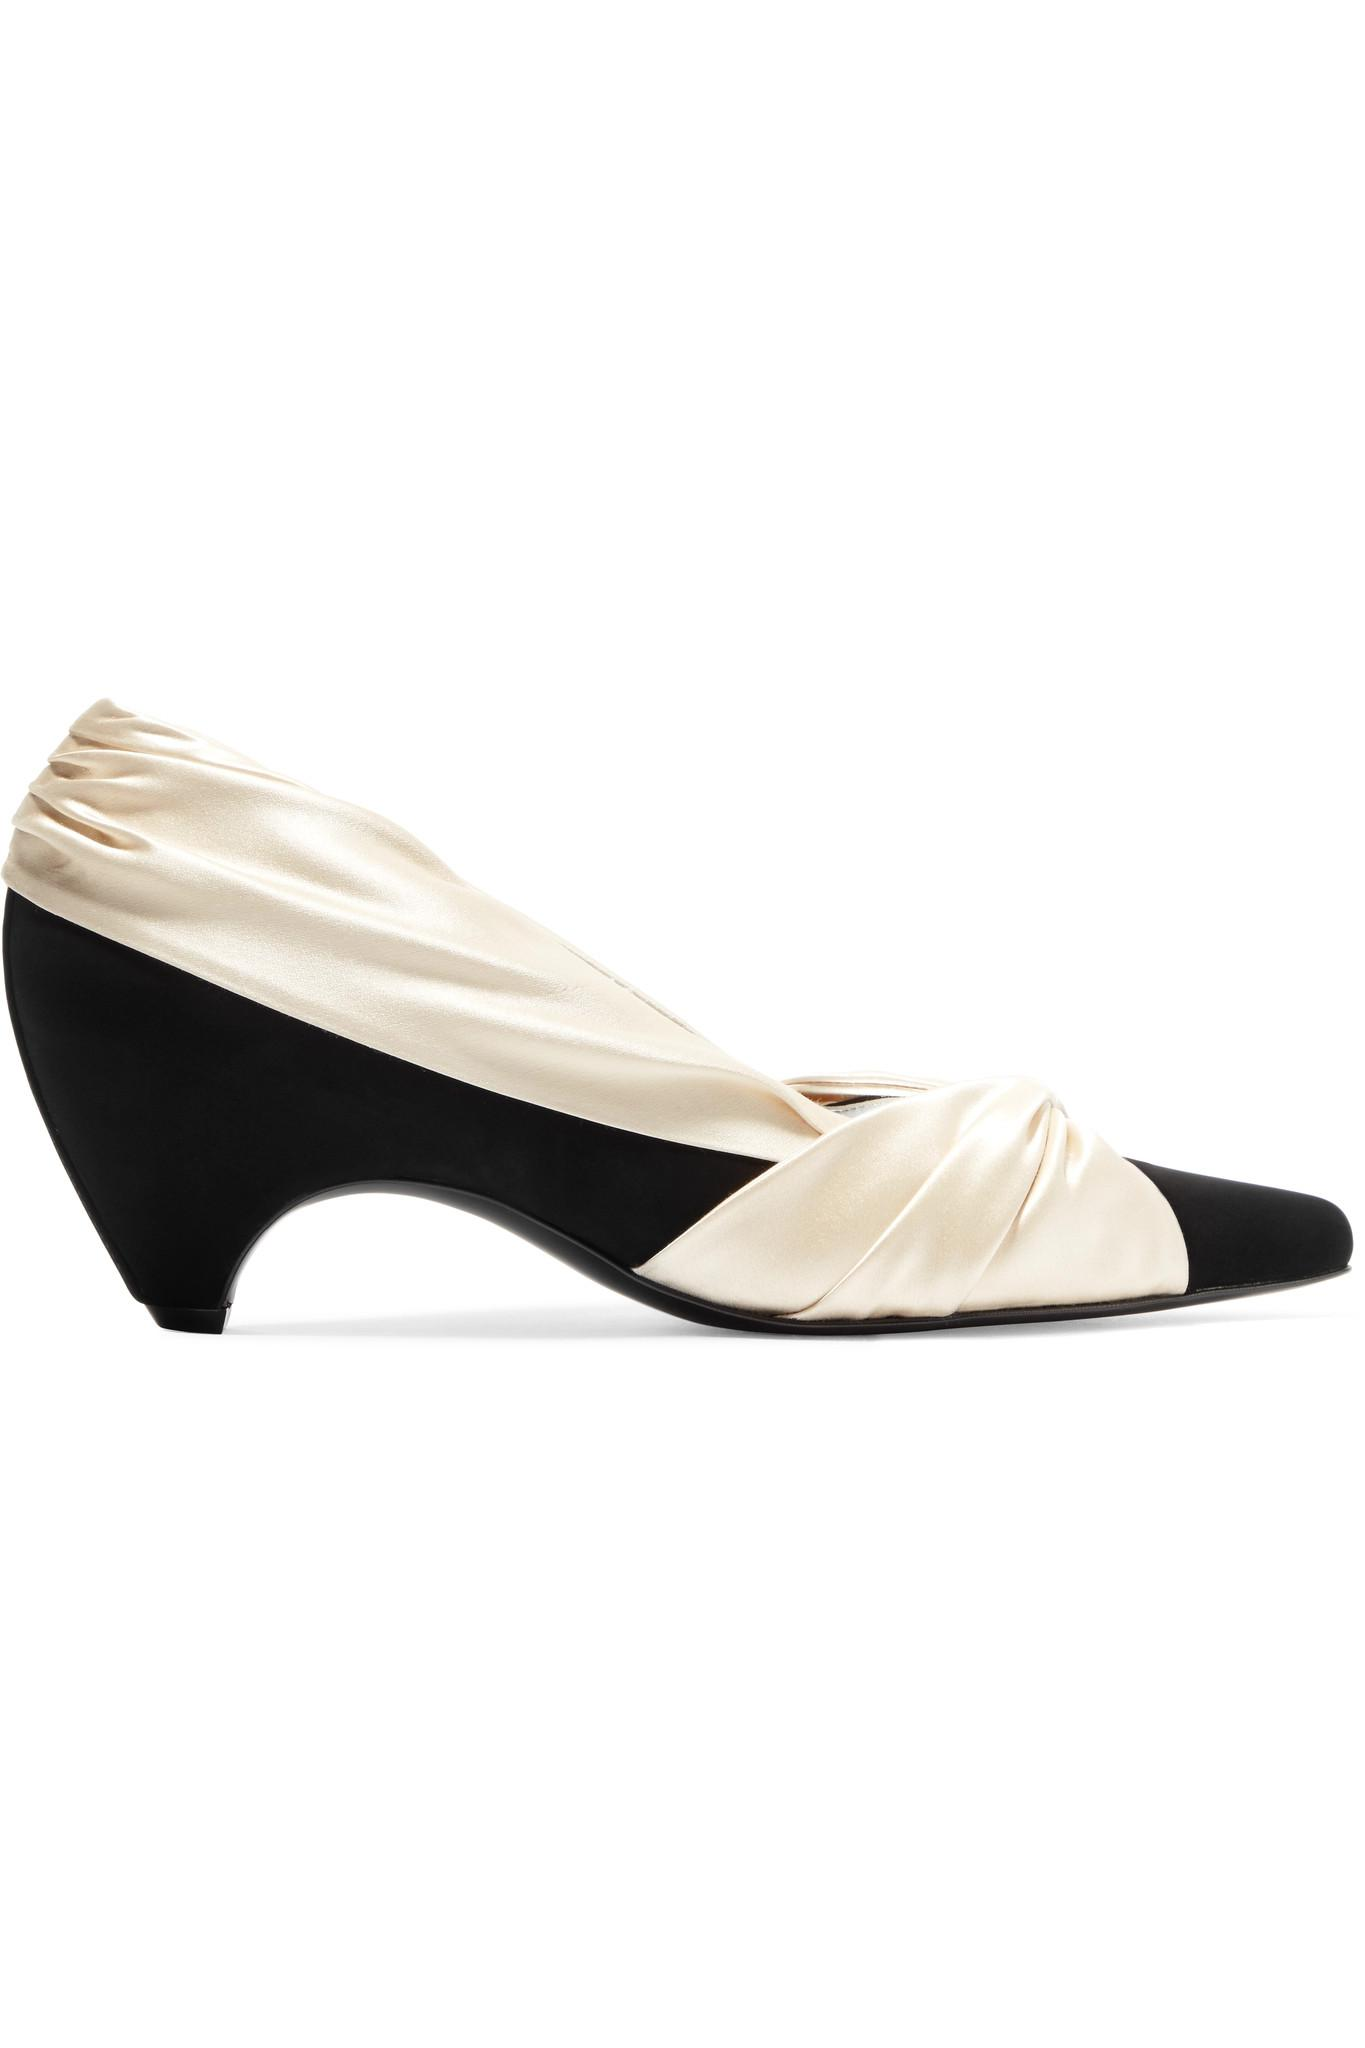 Buy Cheap Get Authentic 2018 New Online Stella McCartney Two-tone Knotted Satin And Faux Suede Pumps - Cream 2018 Discount Outlet Locations v8SSn